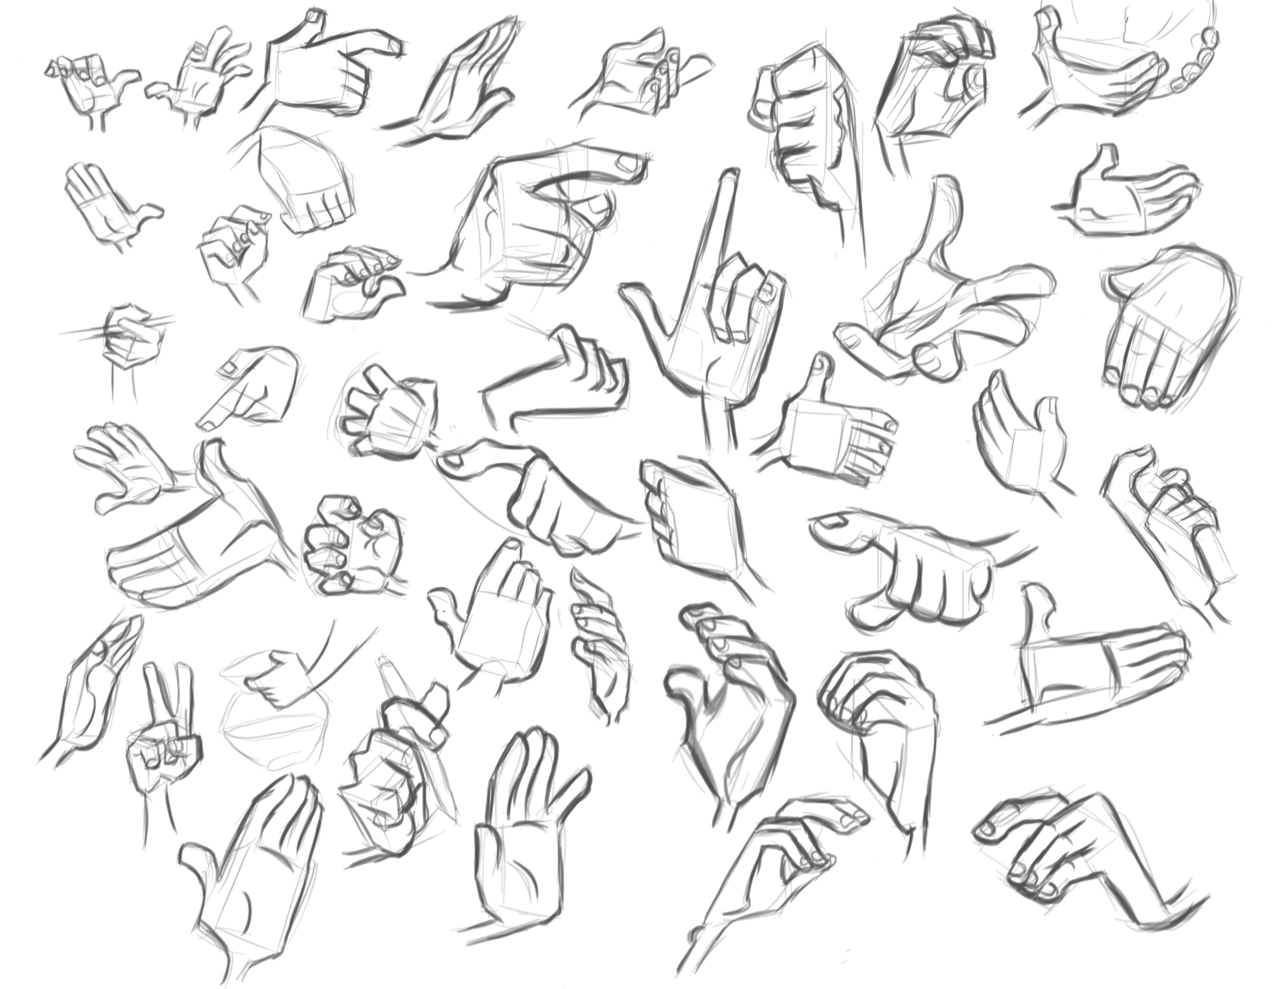 Study Iron Giant Hands 3 By 384sprites On Deviantart Cartoon Drawings How To Draw Hands Hand Drawing Reference